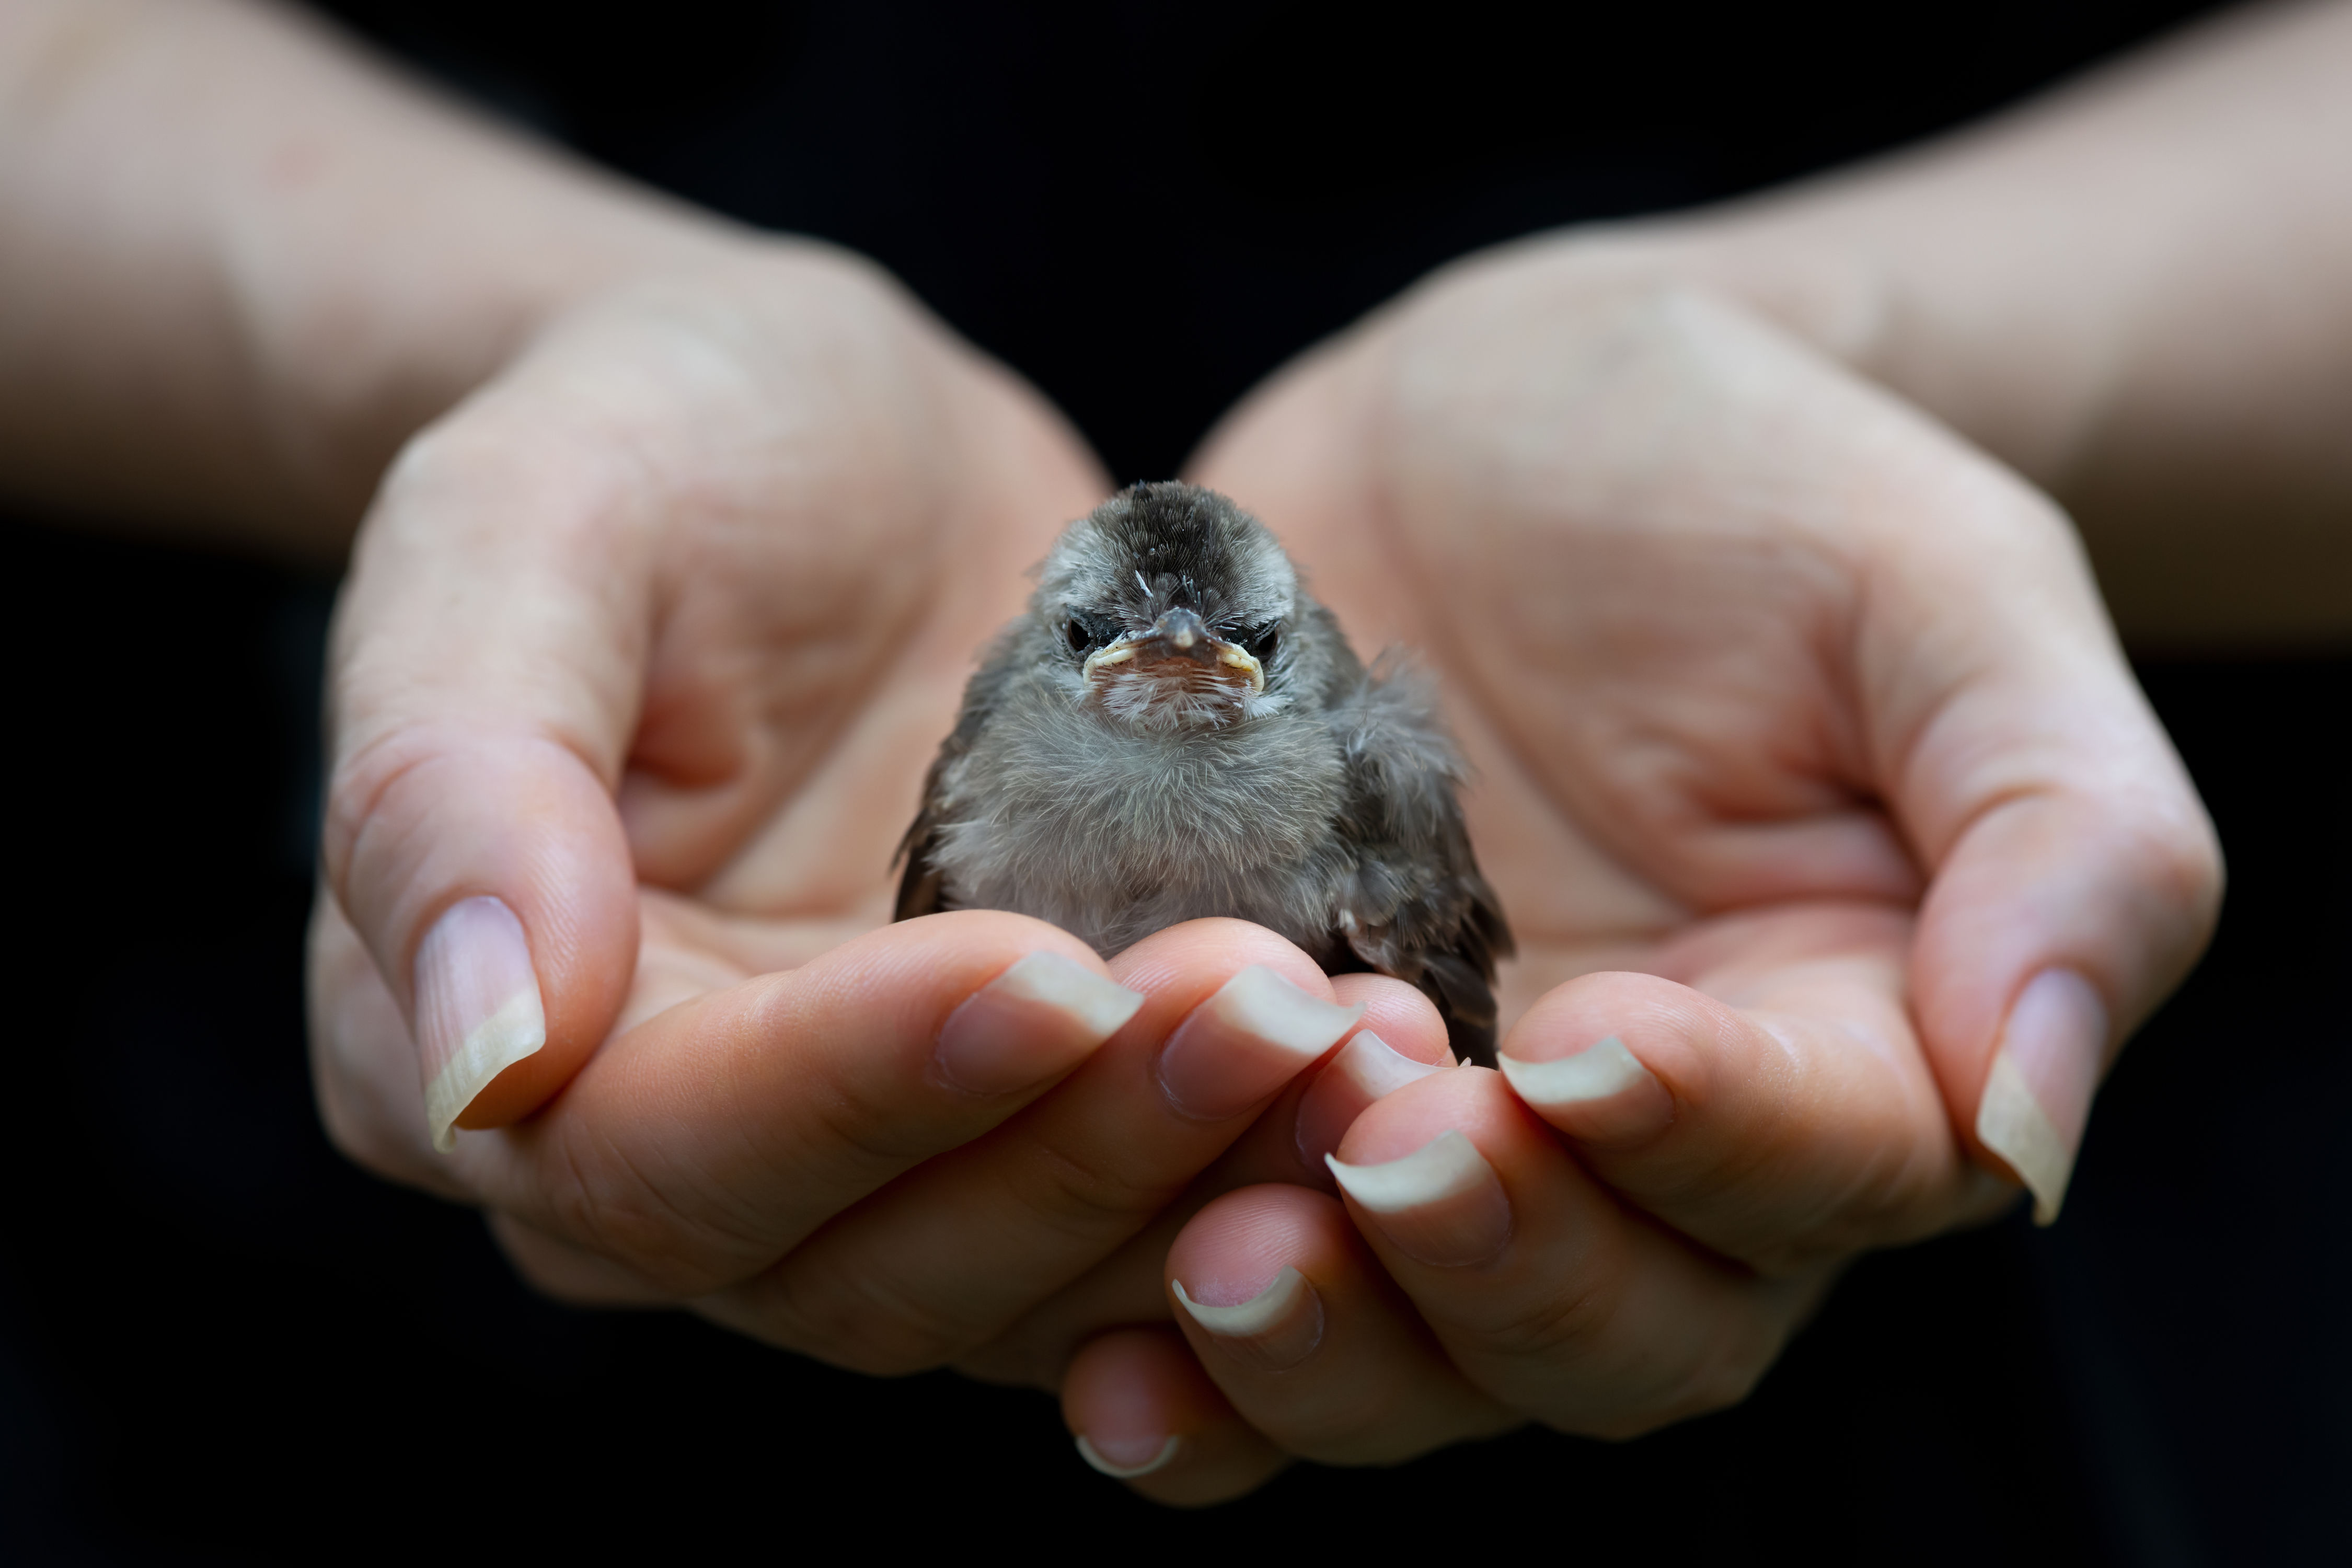 WATCH: How to Know if a Baby Bird Needs Rescuing